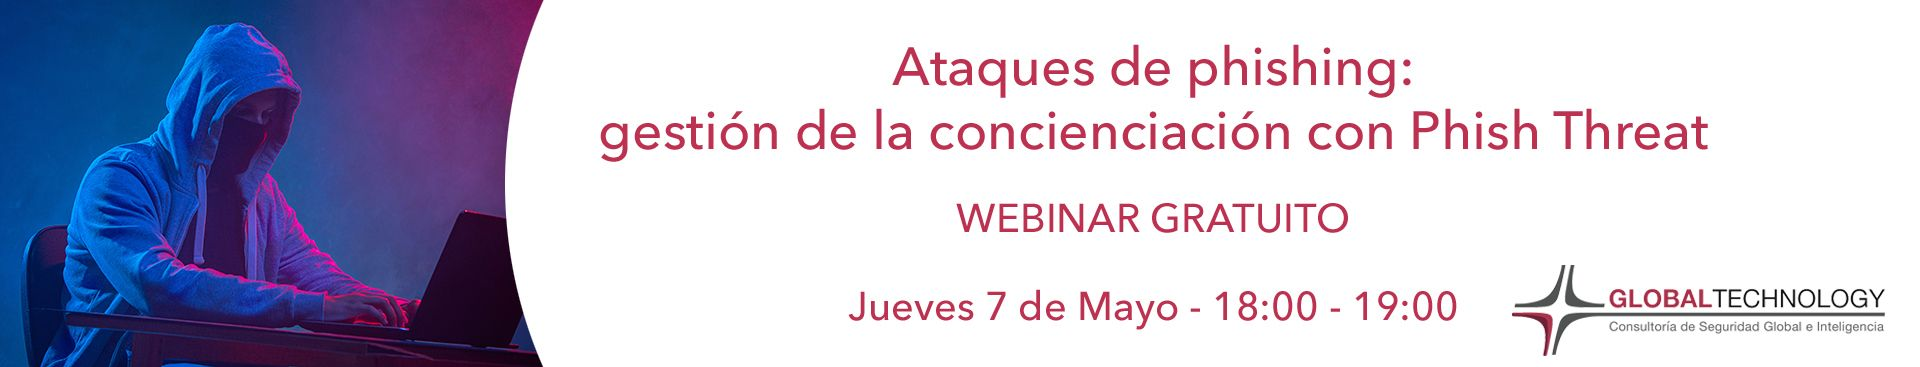 Webinar Concienciacion Phishing Phish Threat